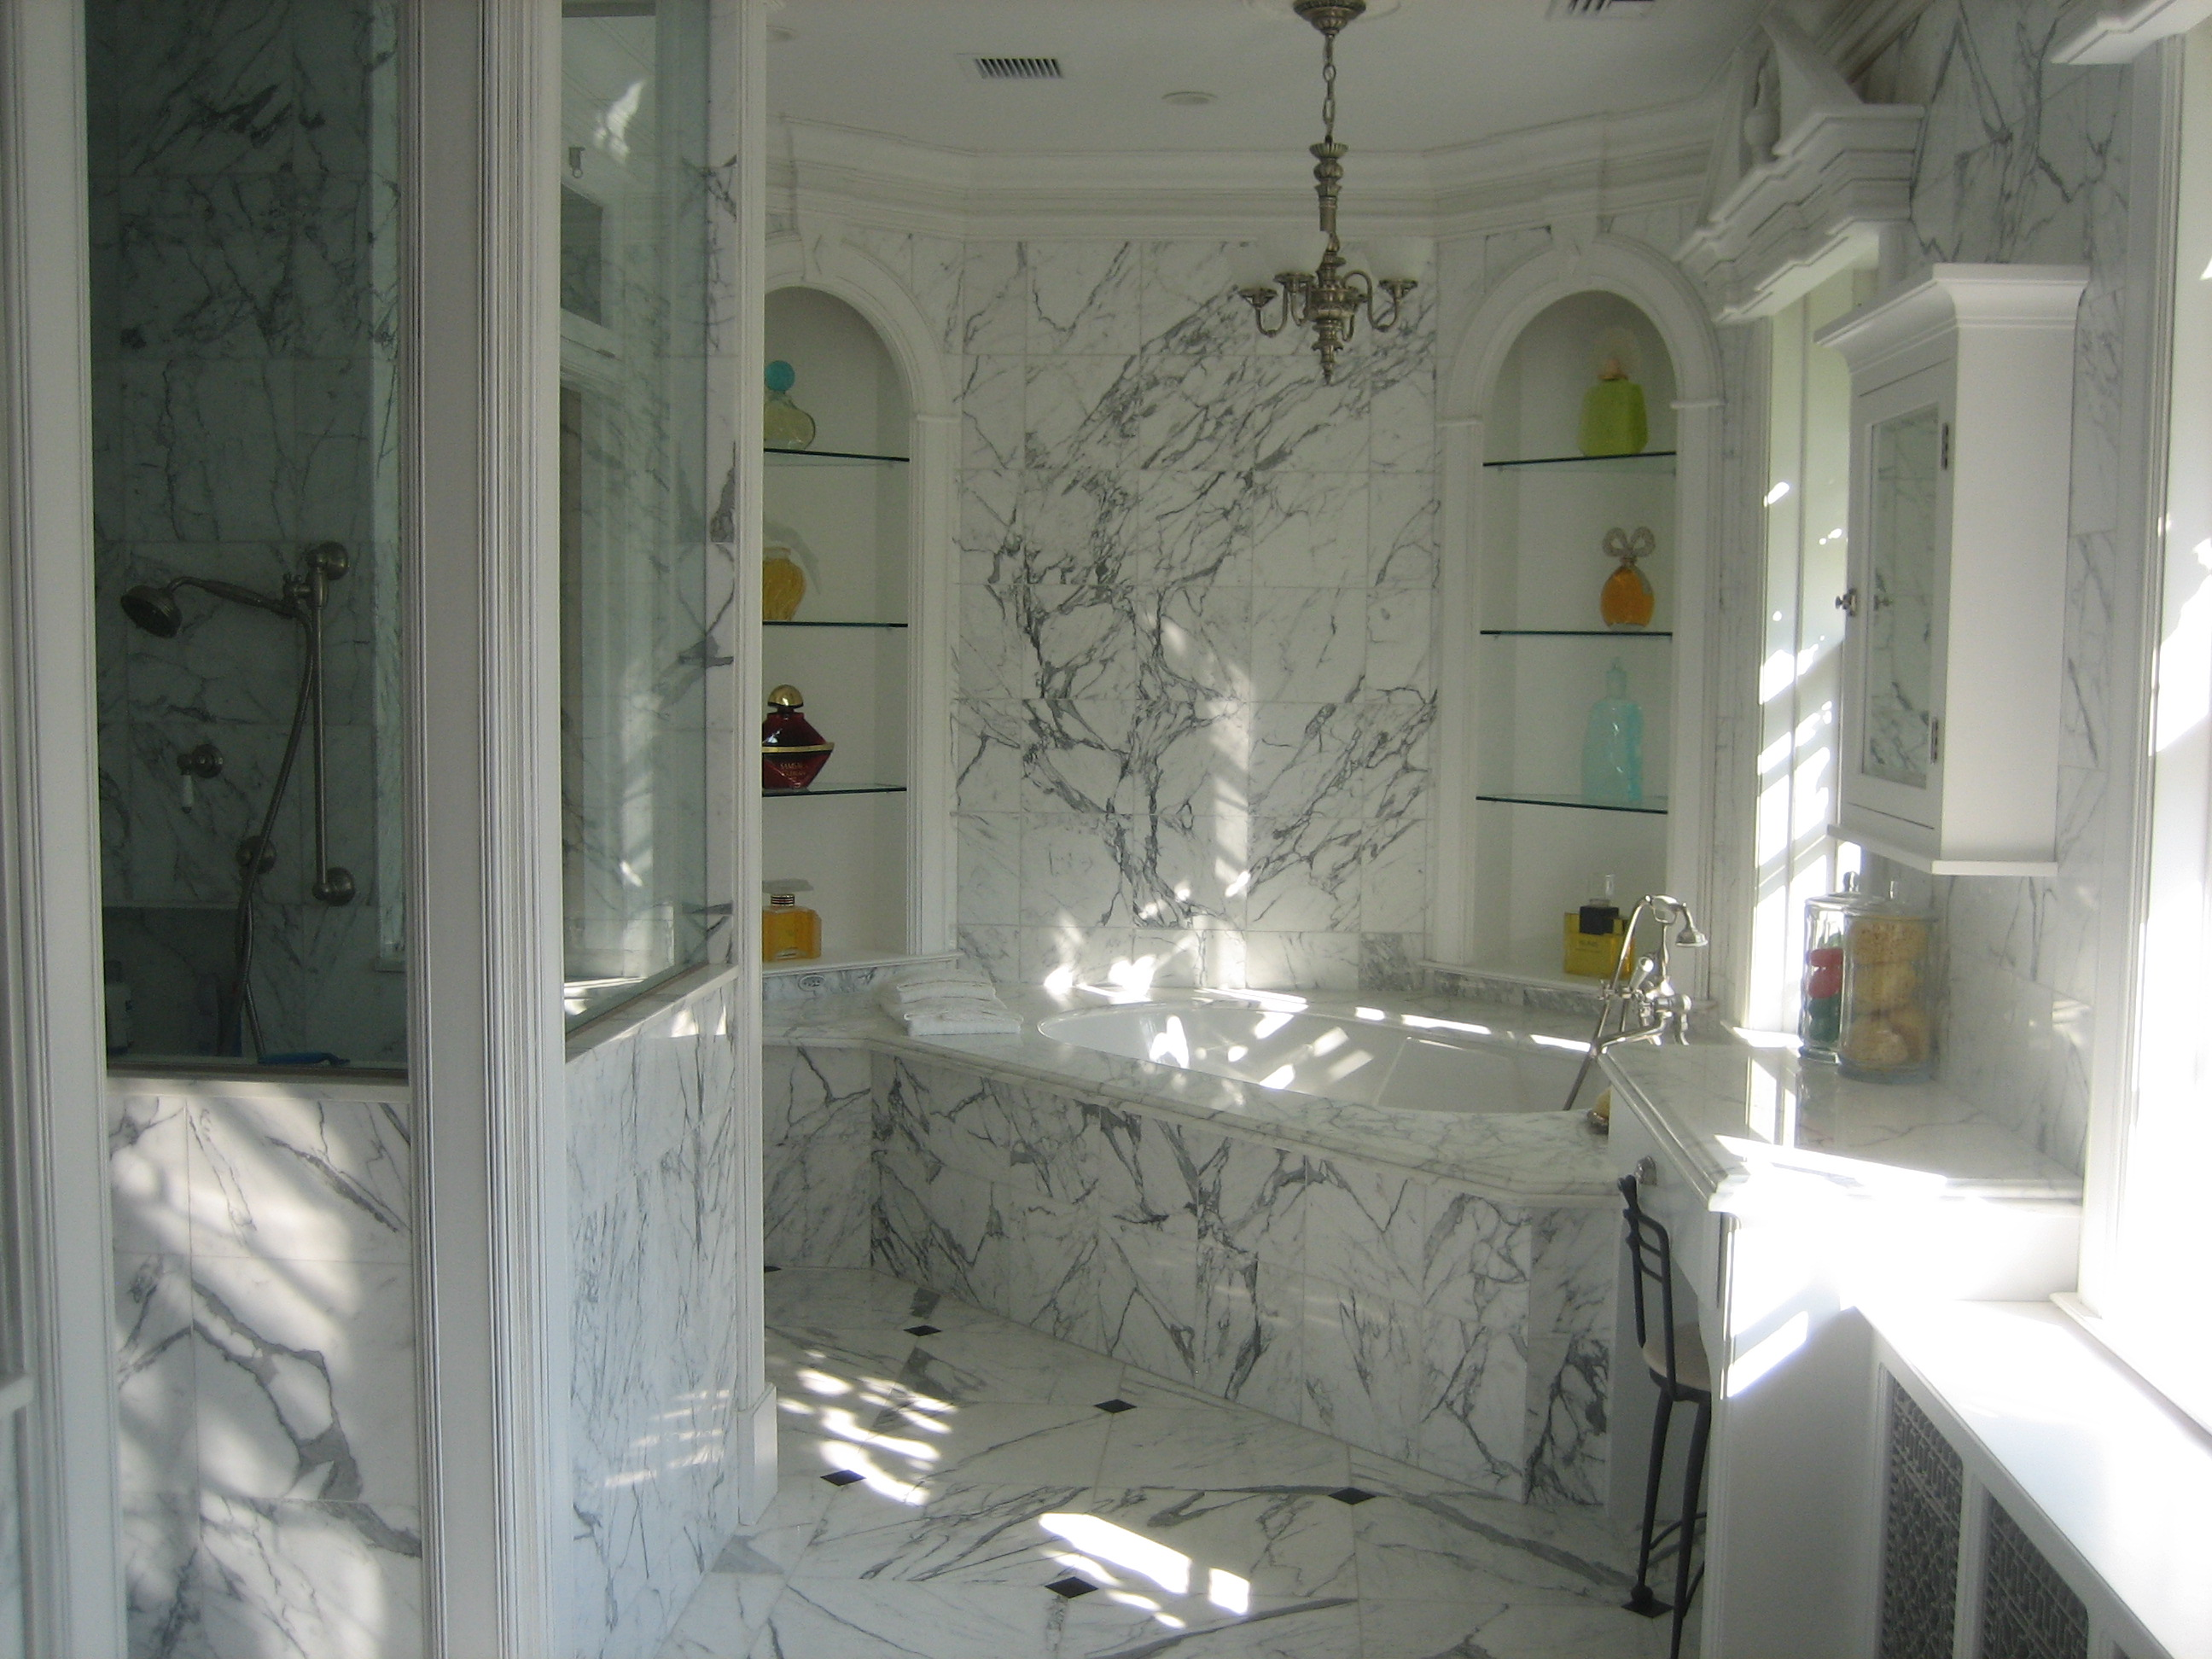 Elegant Bath Toni Sabatino Style - Elegant-traditional-bathrooms